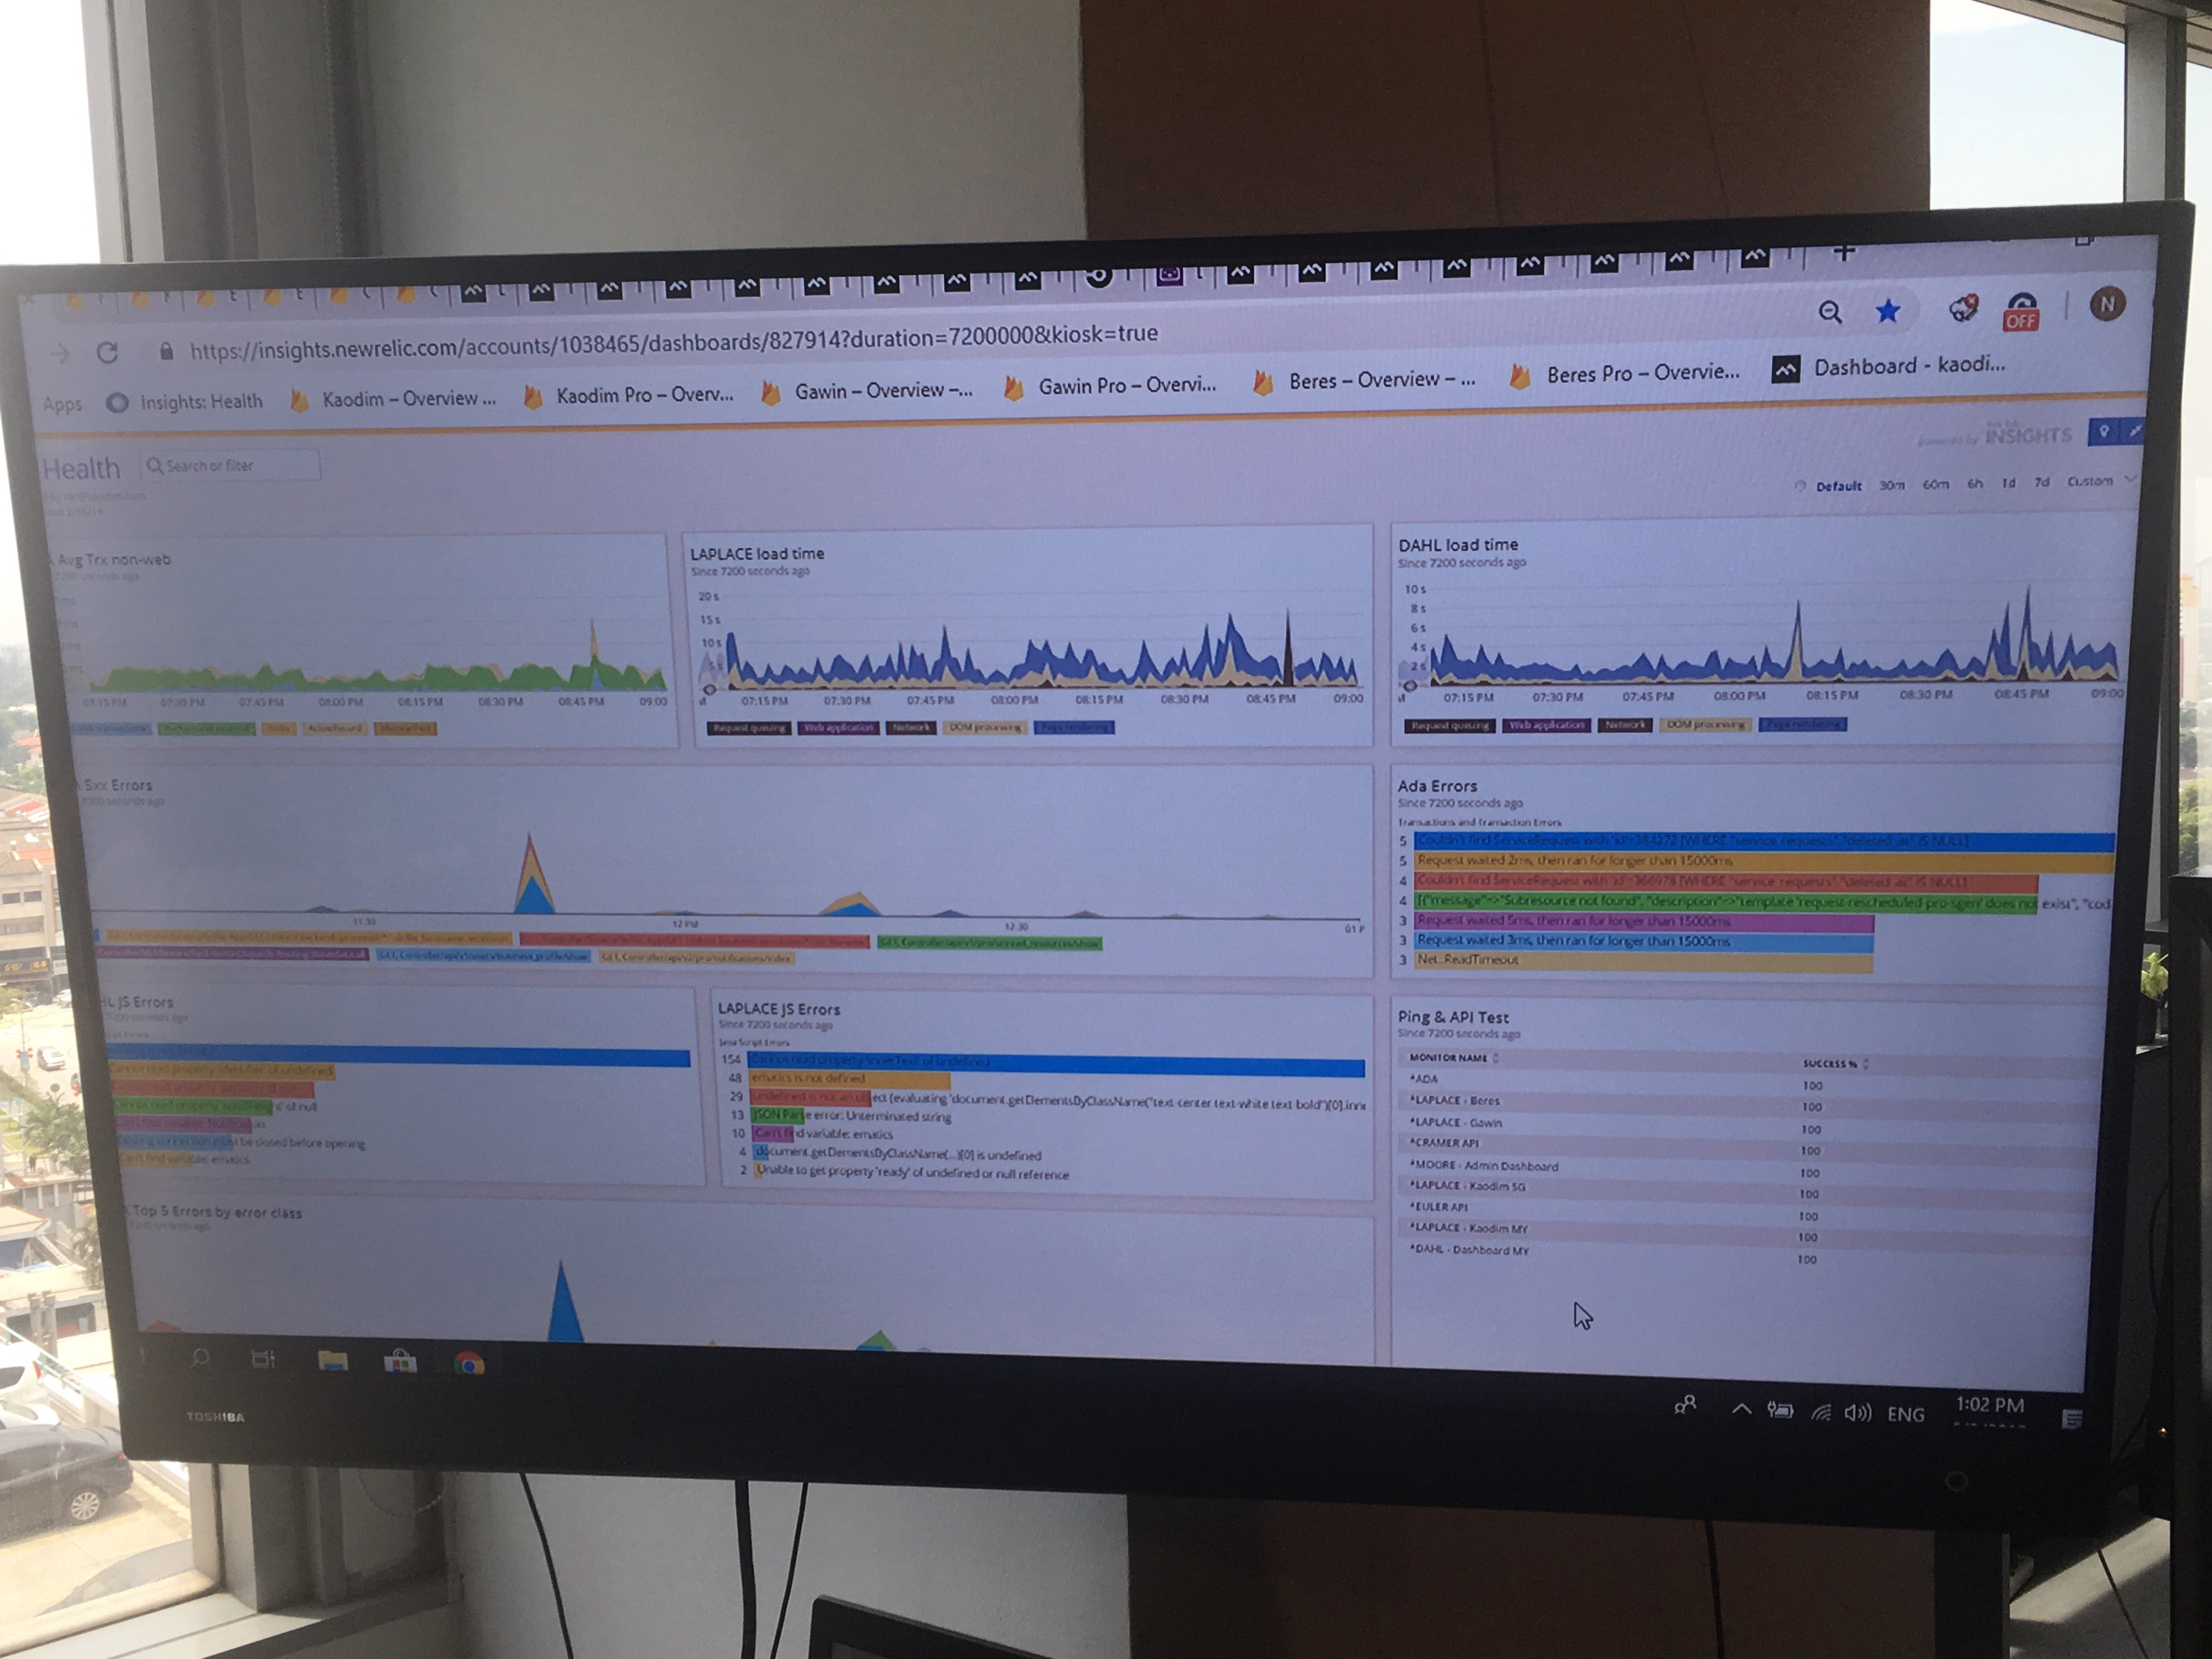 How we monitor the health of our applications and infrastructure